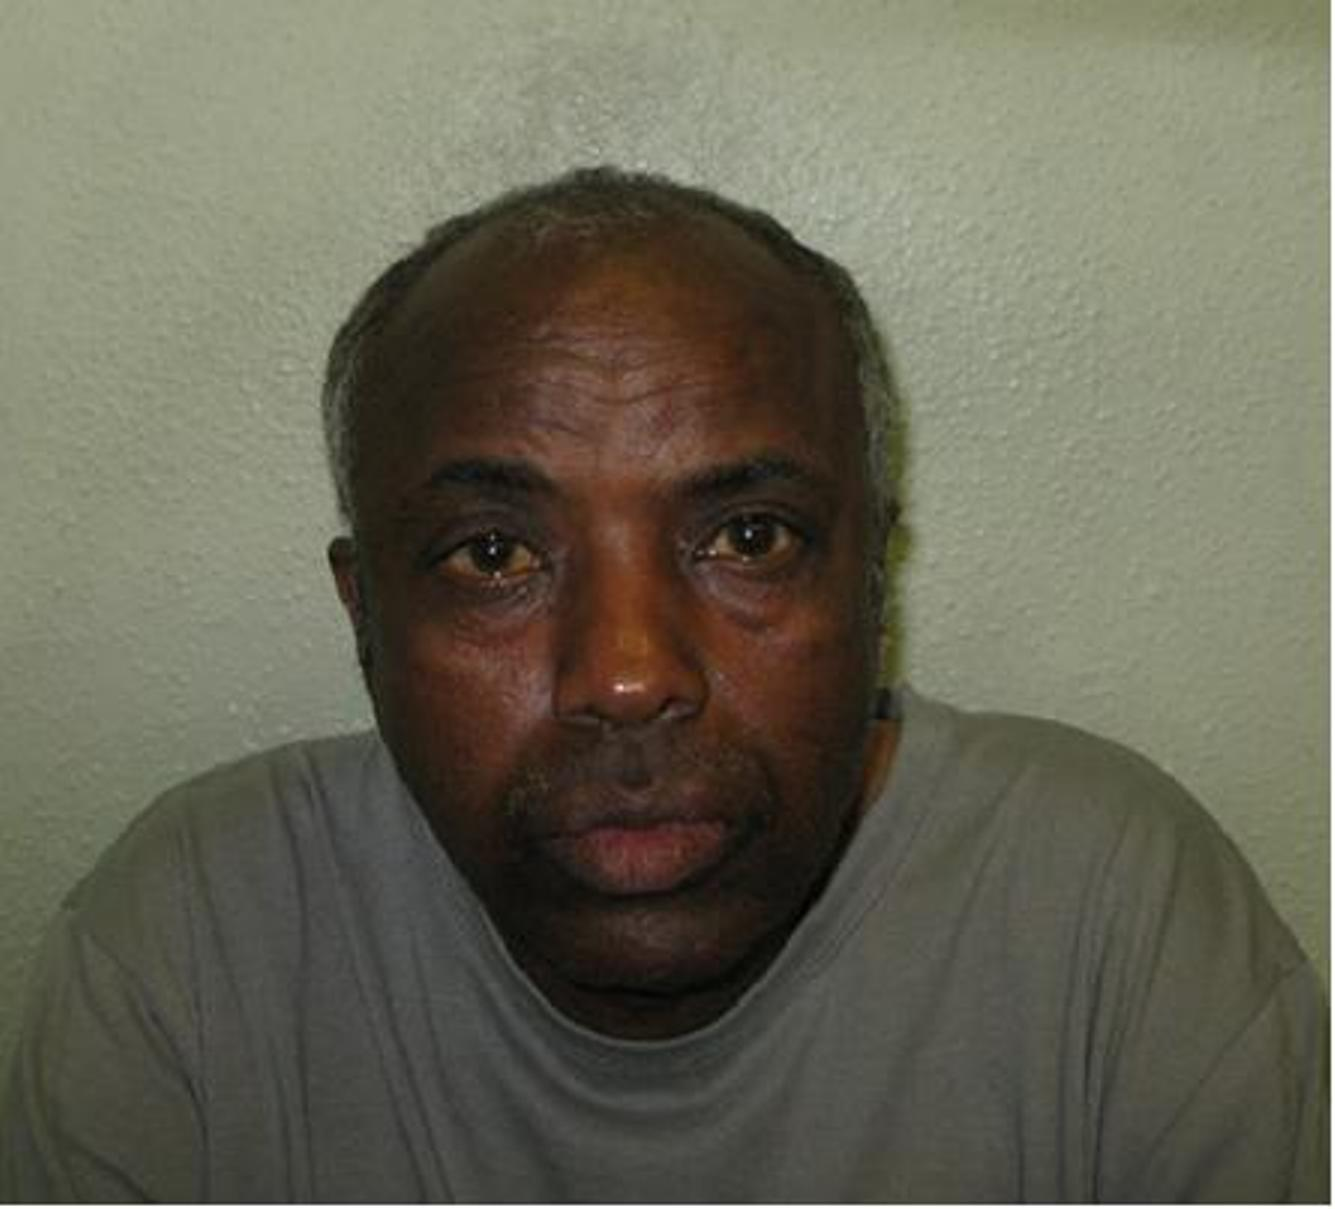 Mentally ill killer hospitalised after slitting disabled neighbour's throat in Thamesmead